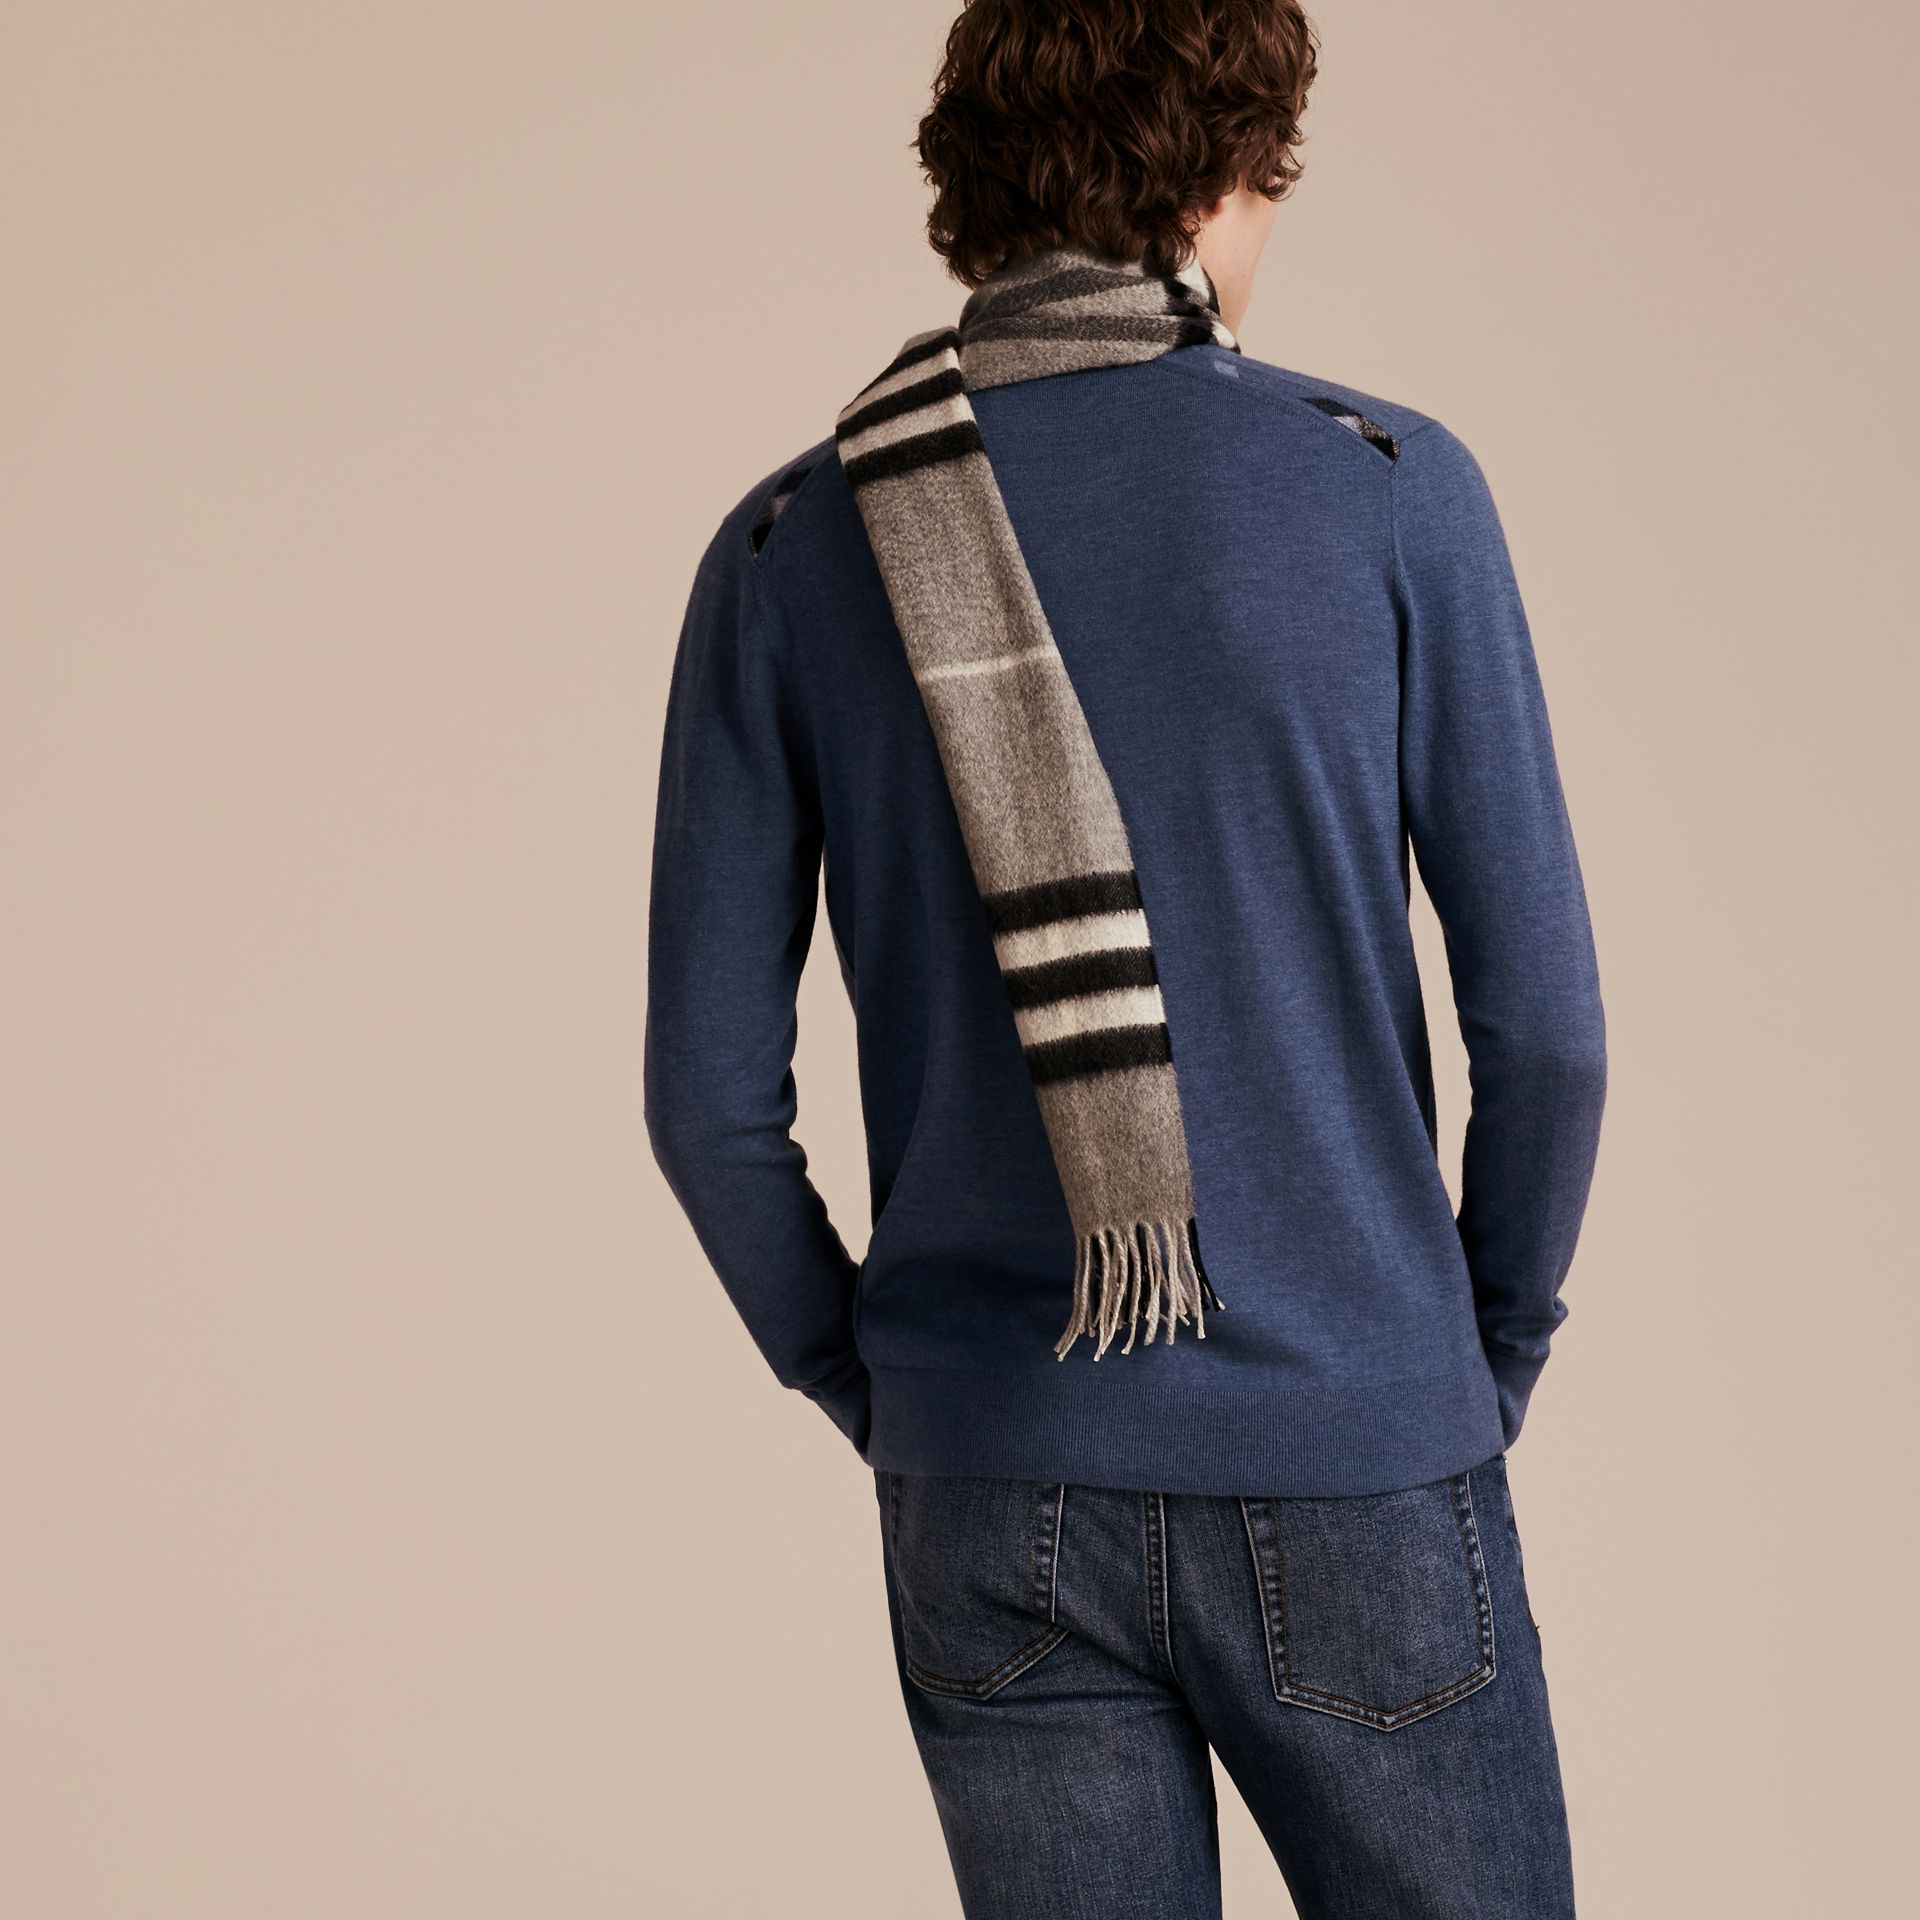 Check Jacquard Detail Cashmere Sweater in Dusty Blue - Men | Burberry - gallery image 3